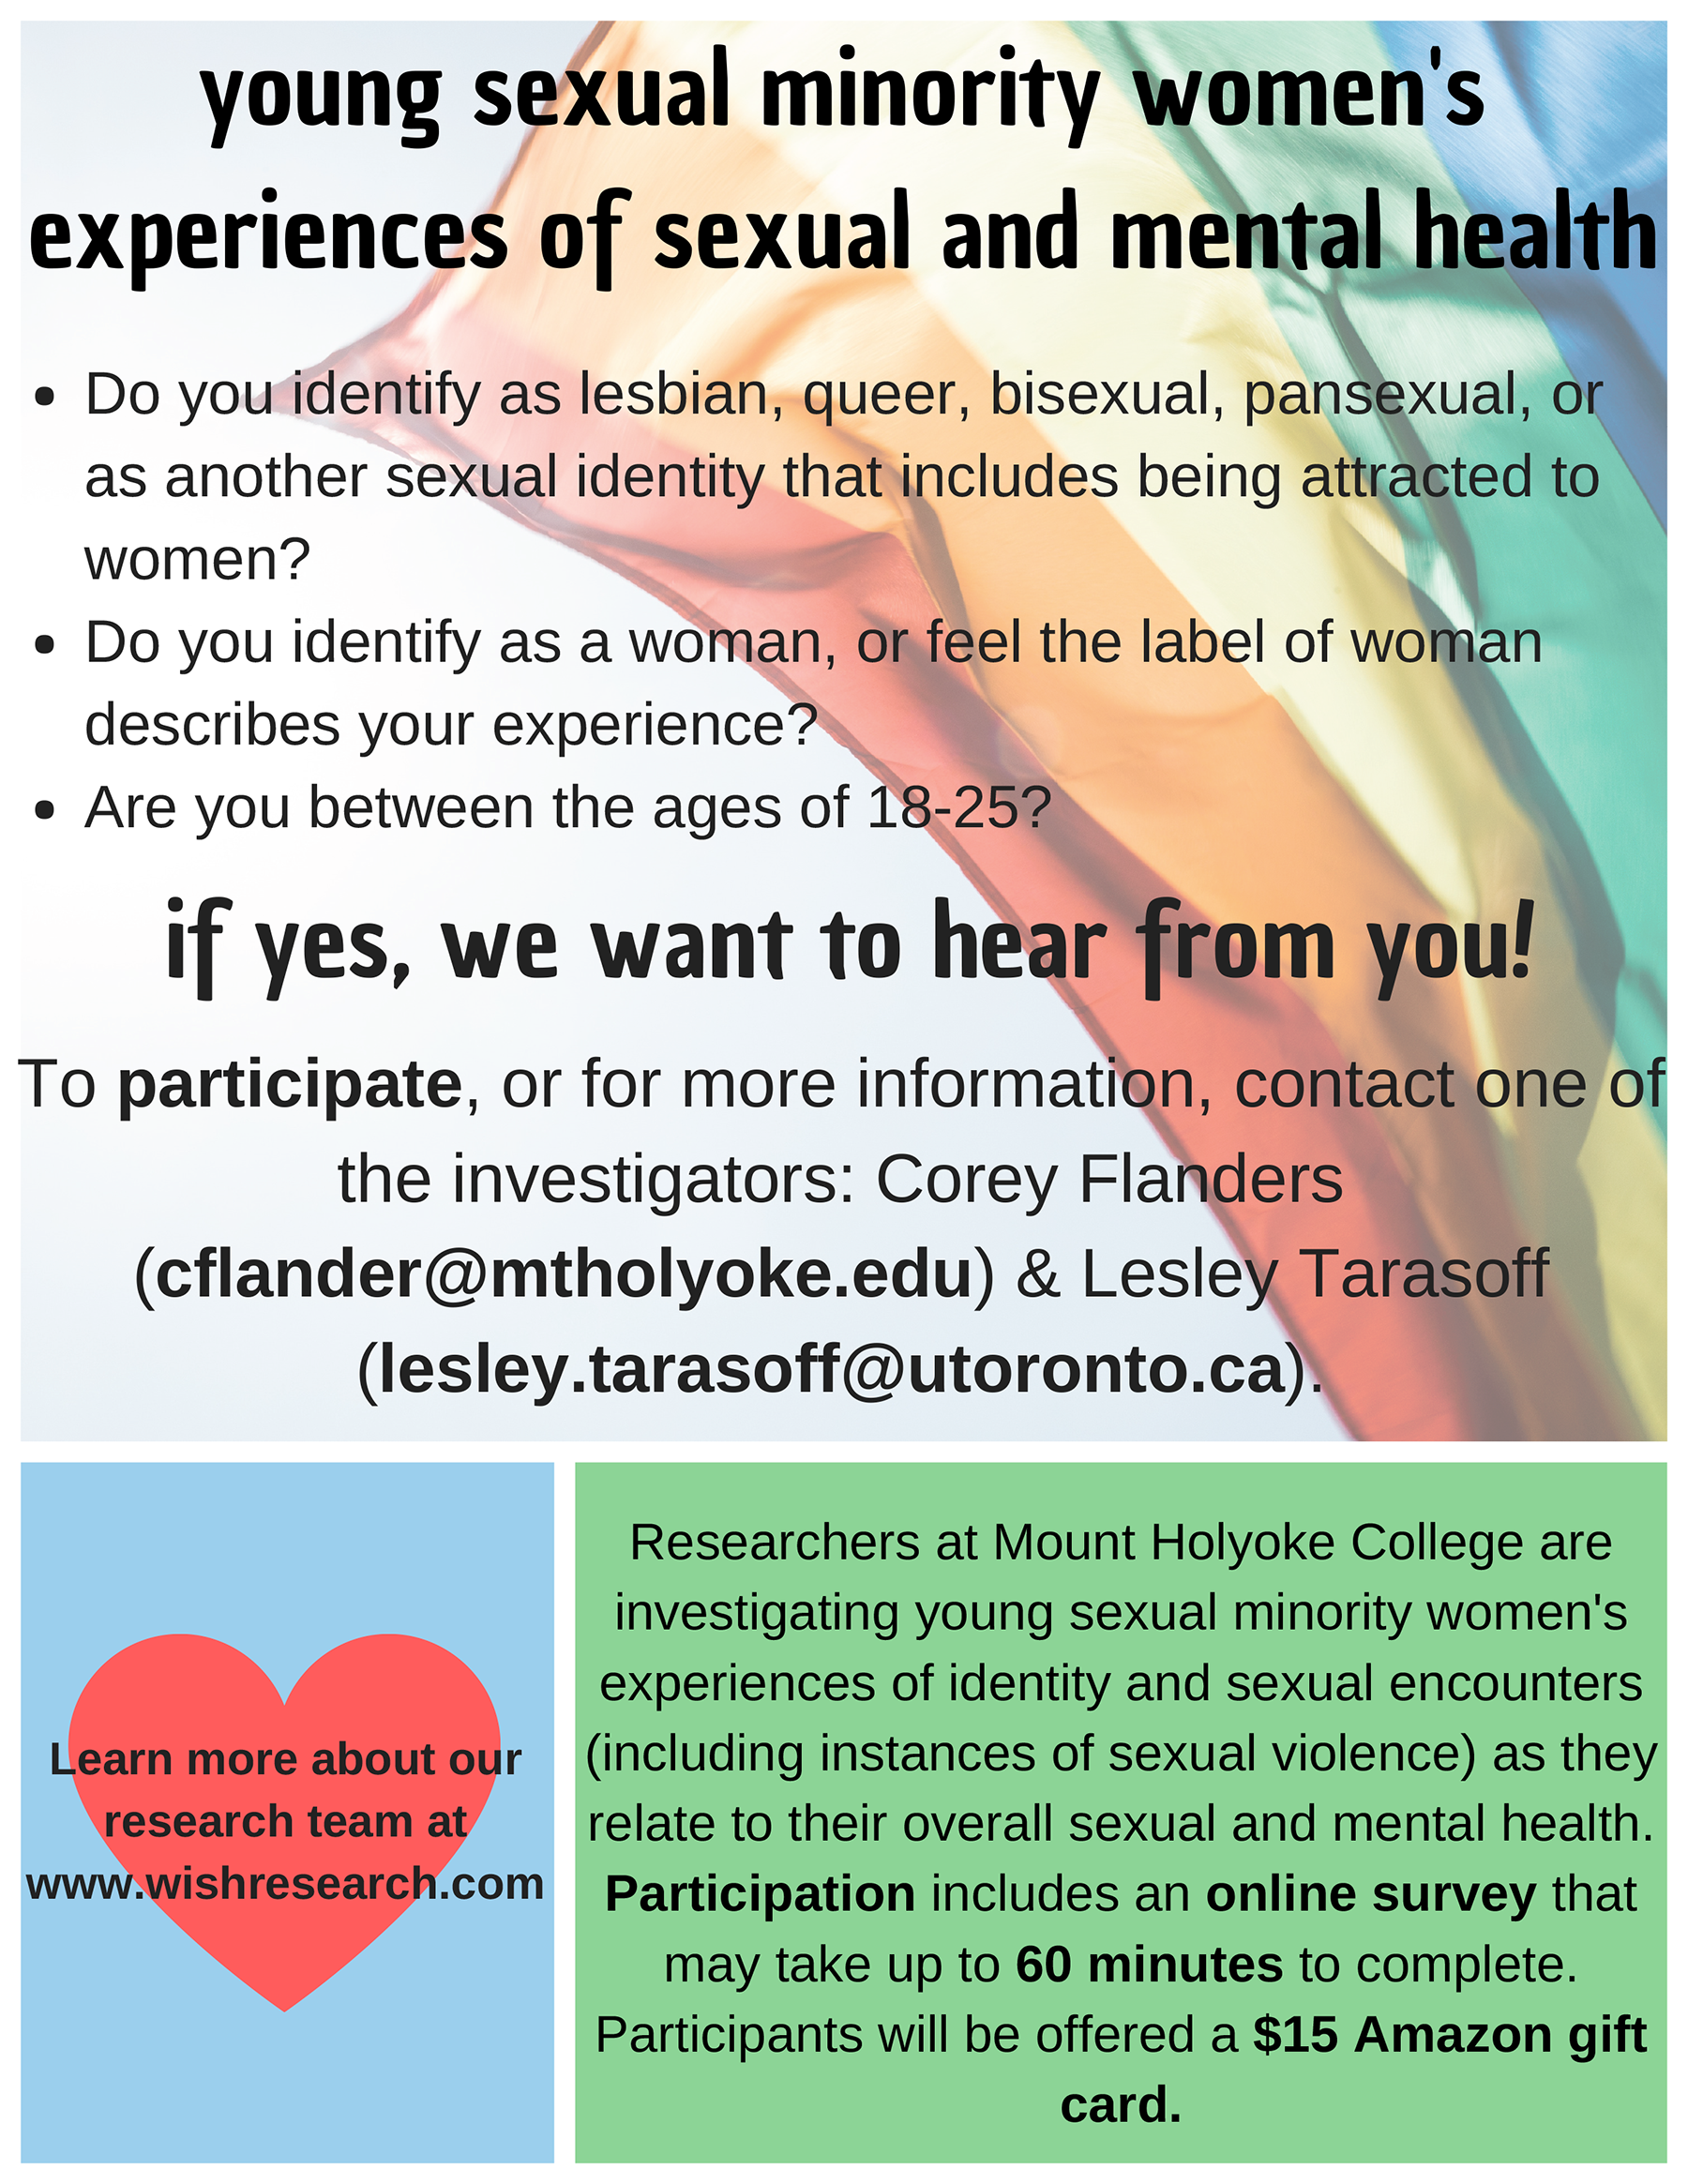 Recruitment poster for research on young sexual minority women's experiences of sexual and mental health